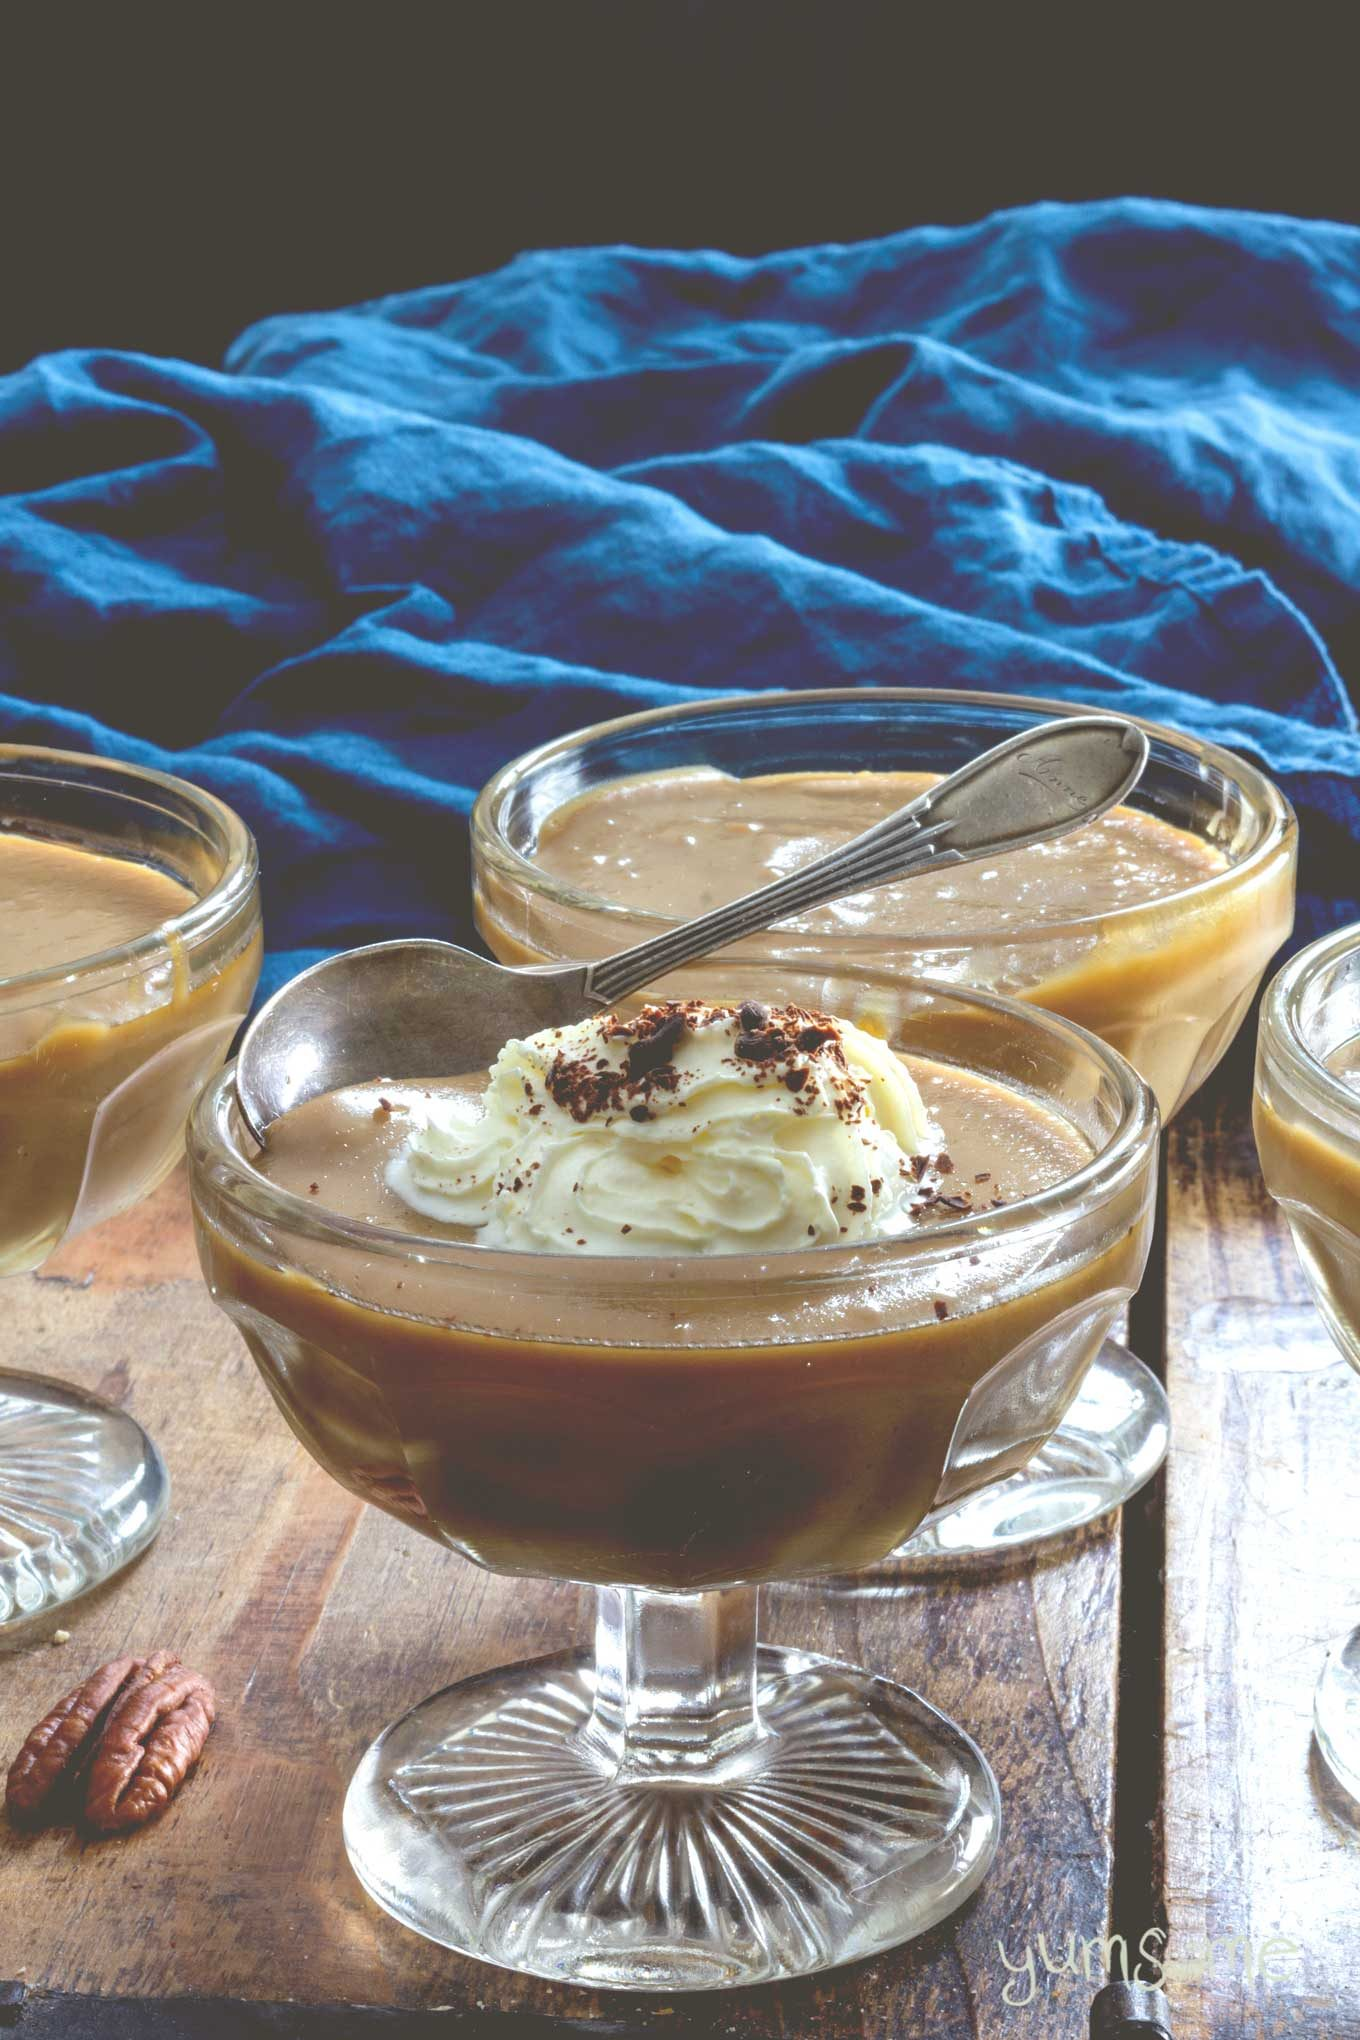 Vegan butterscotch pudding in glass bowls, against a purple and blue background.